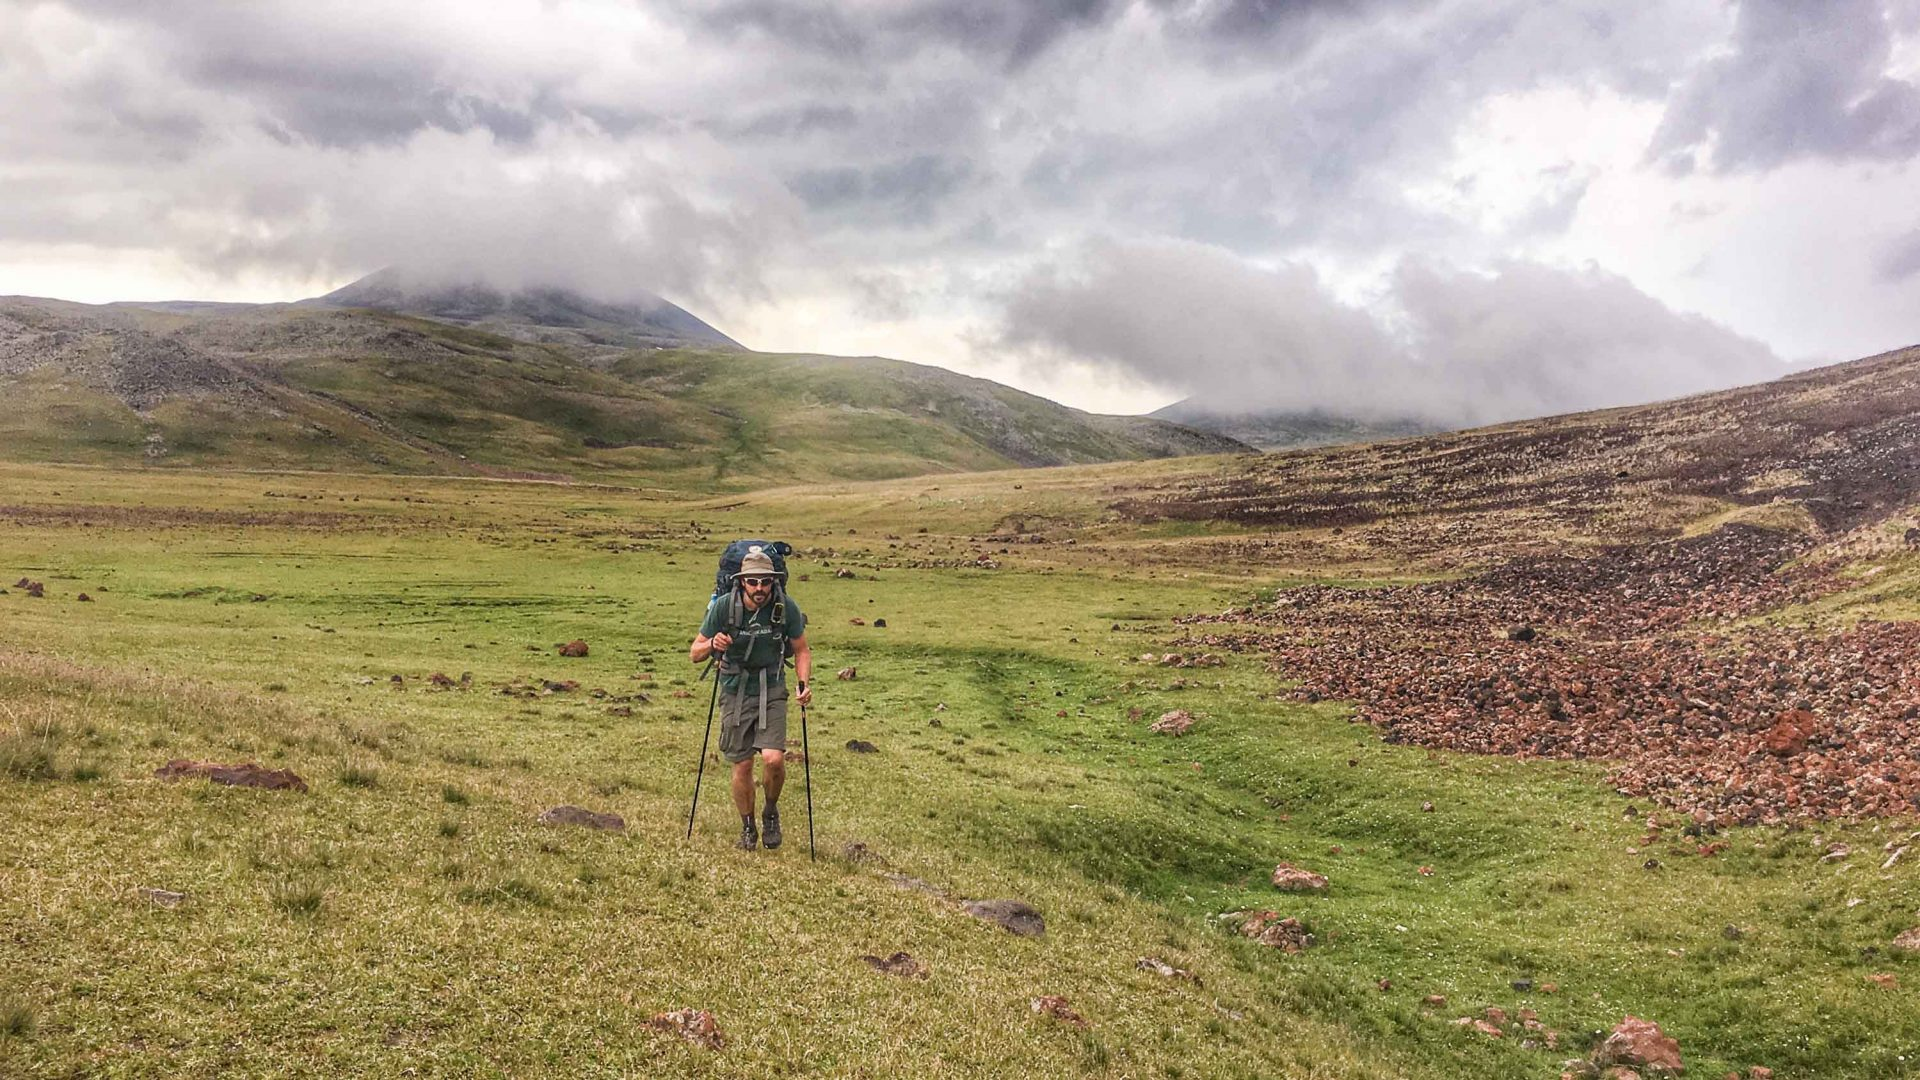 Breaking new ground: When does a path become a hiking trail?